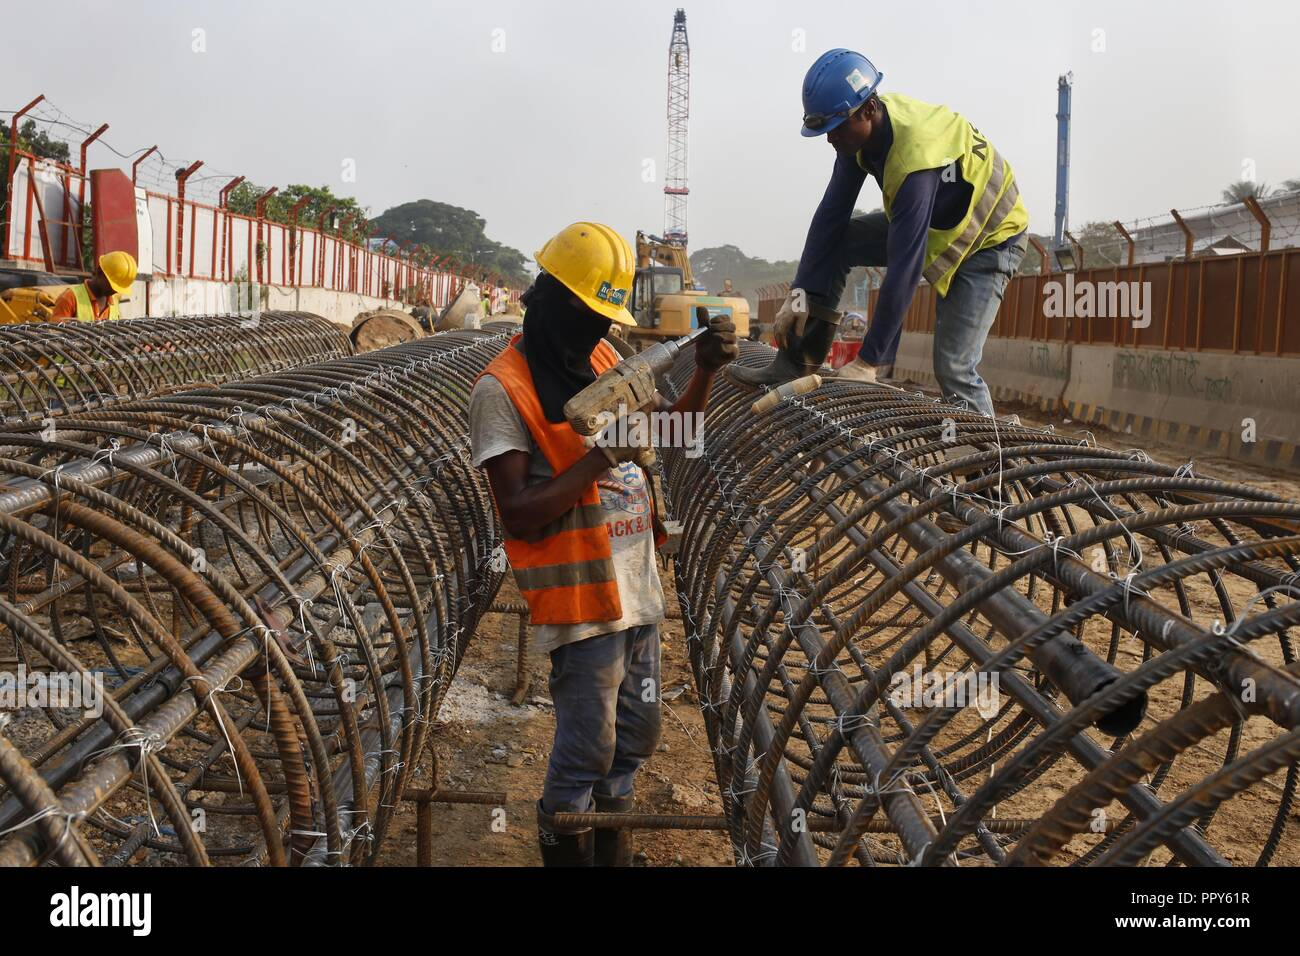 Dhaka, Bangladesh  28th Sep, 2018  Construction workers work in a